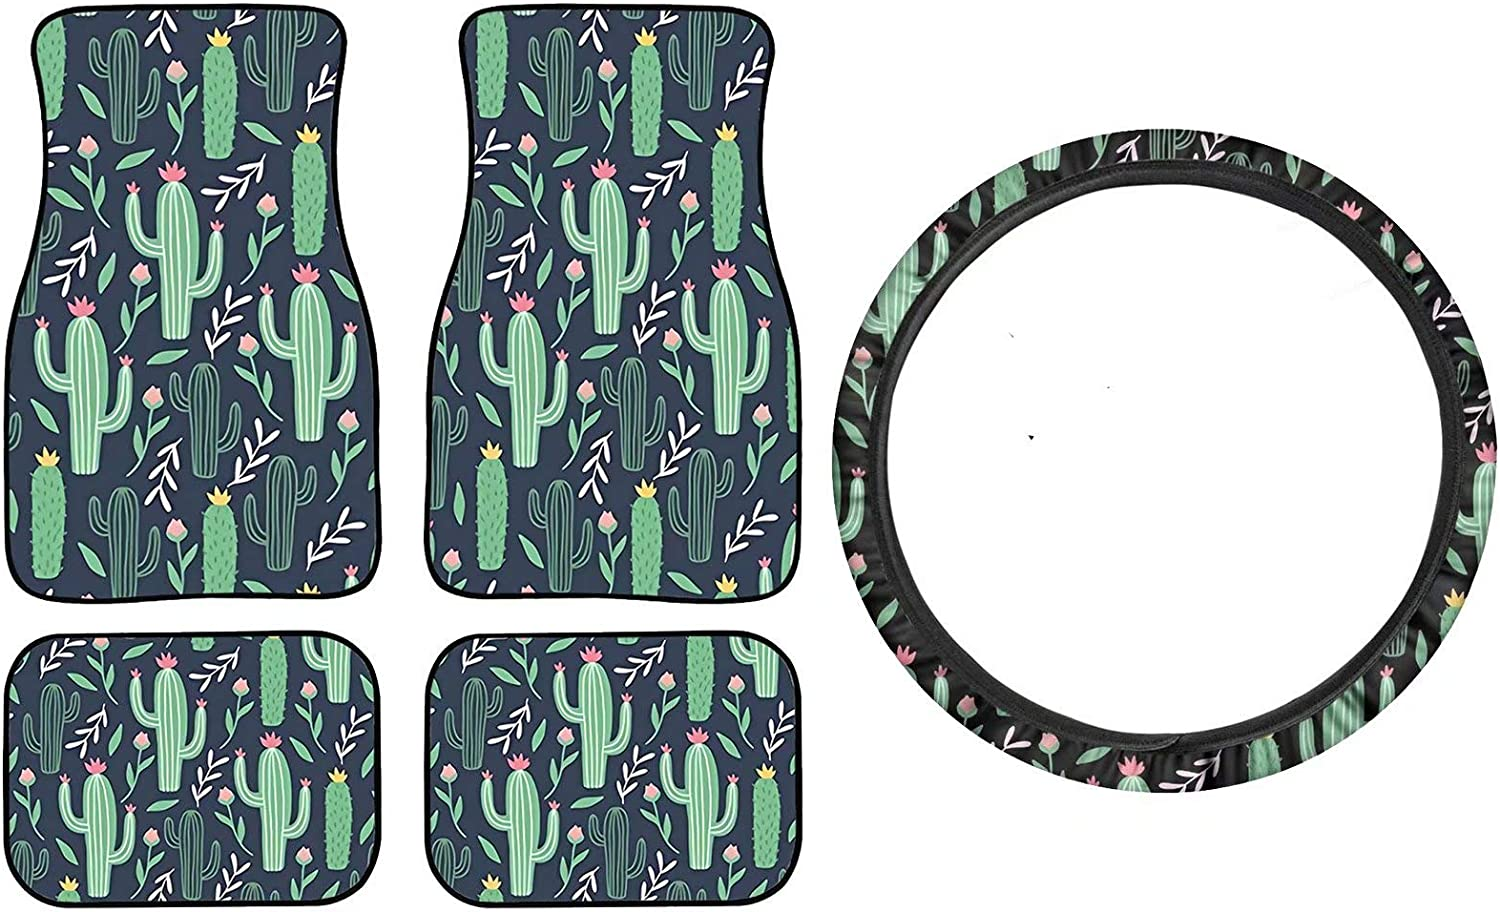 Freewander Set Cheap SALE Start of 5 Pieces Safety and trust Cactus Whee Car Print Floral Steering